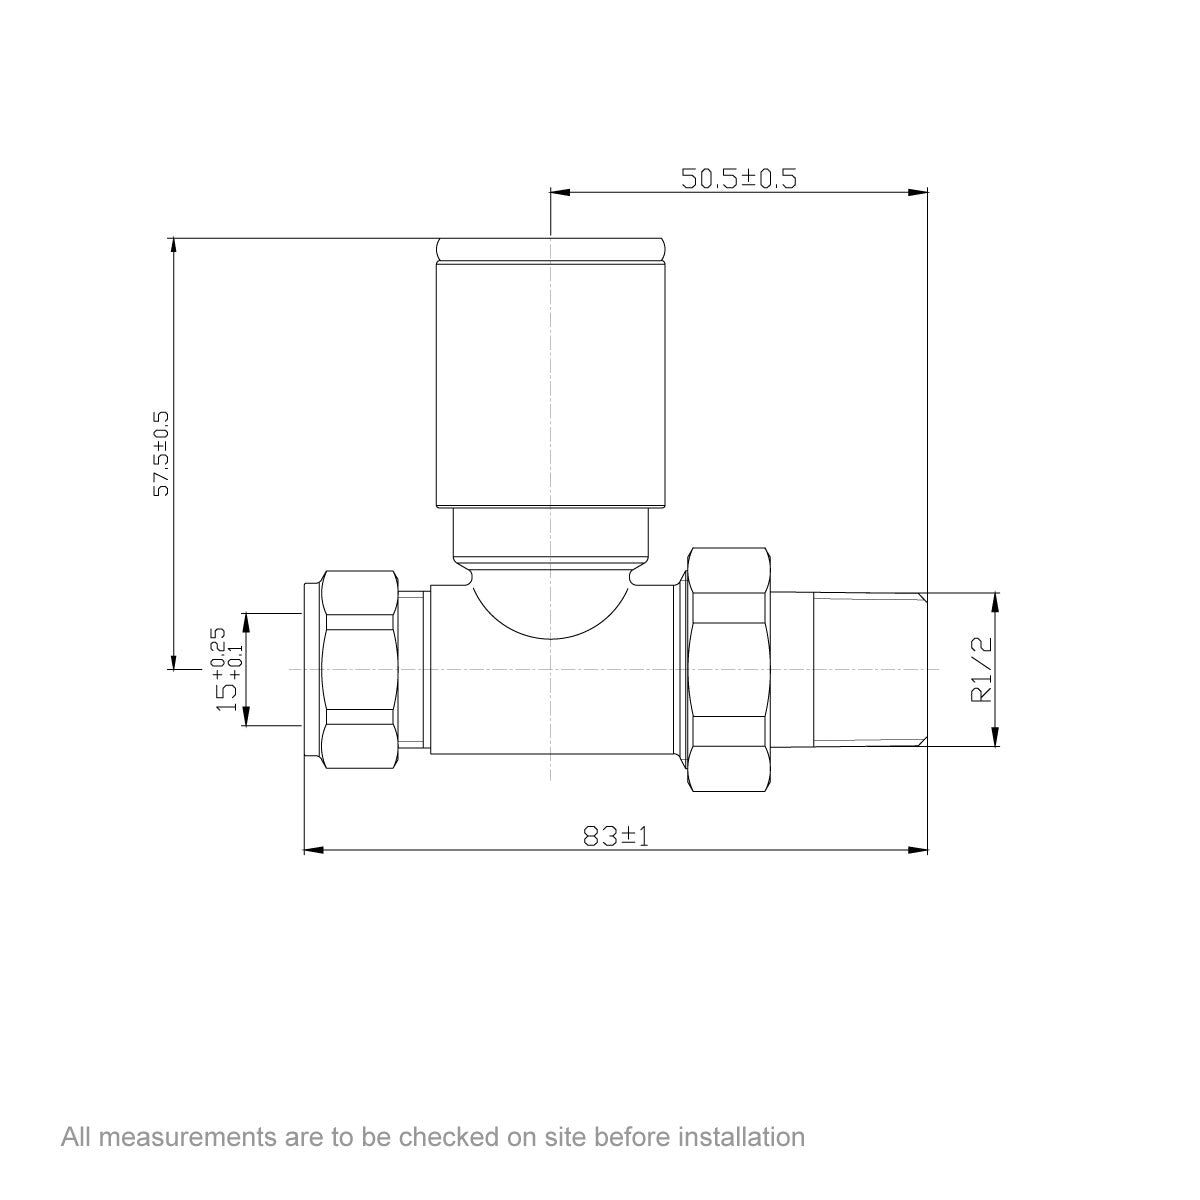 Dimensions for Orchard Mako straight radiator valves